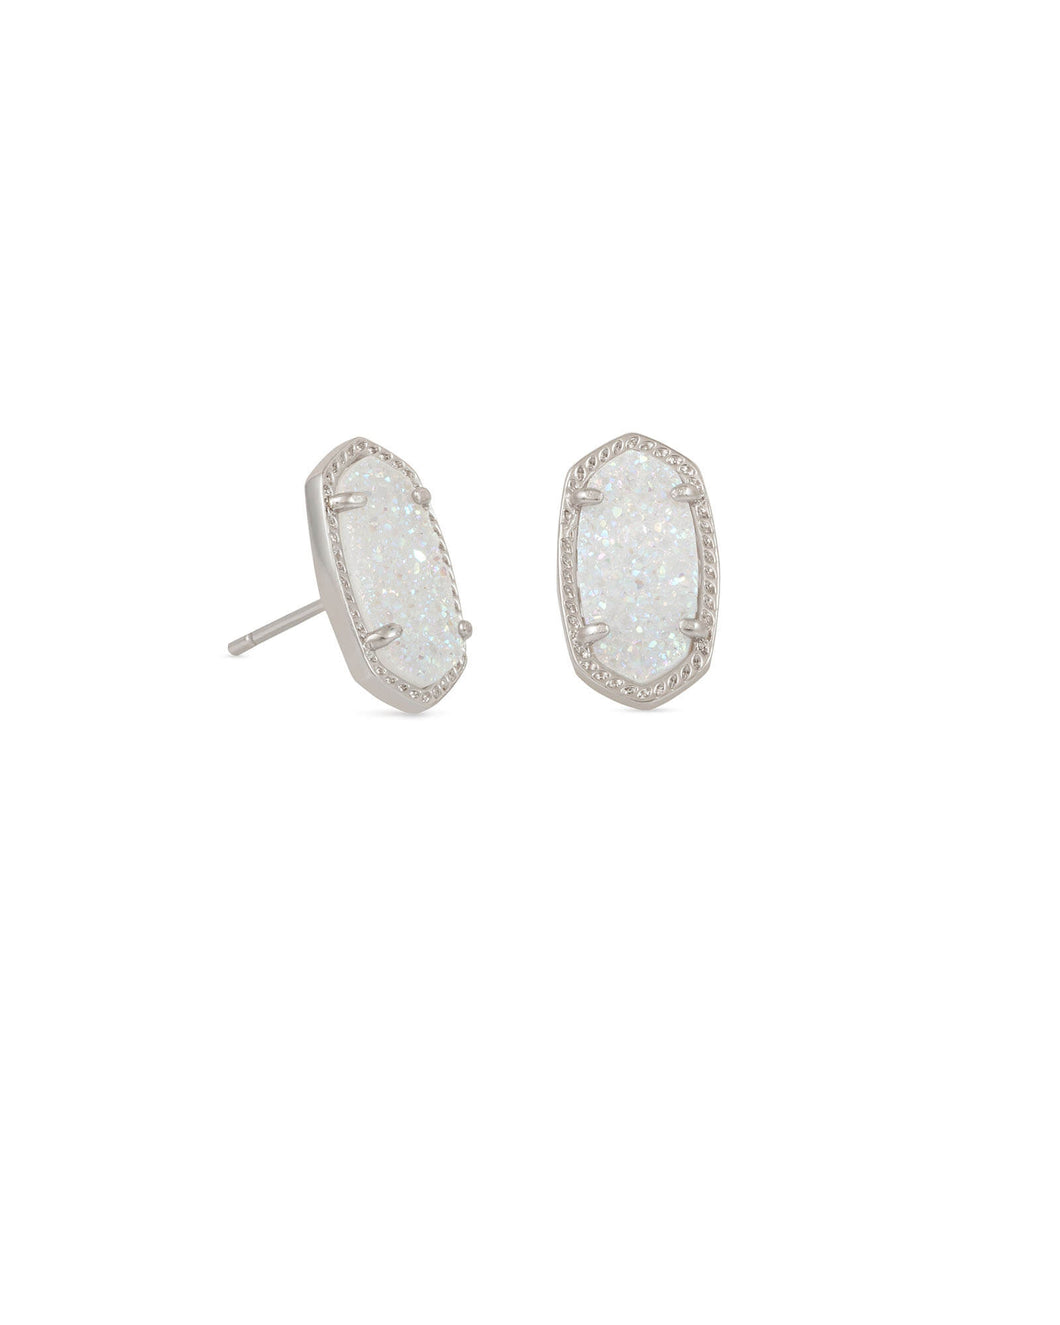 Ellie Stud Earrings in Iridescent Drusy